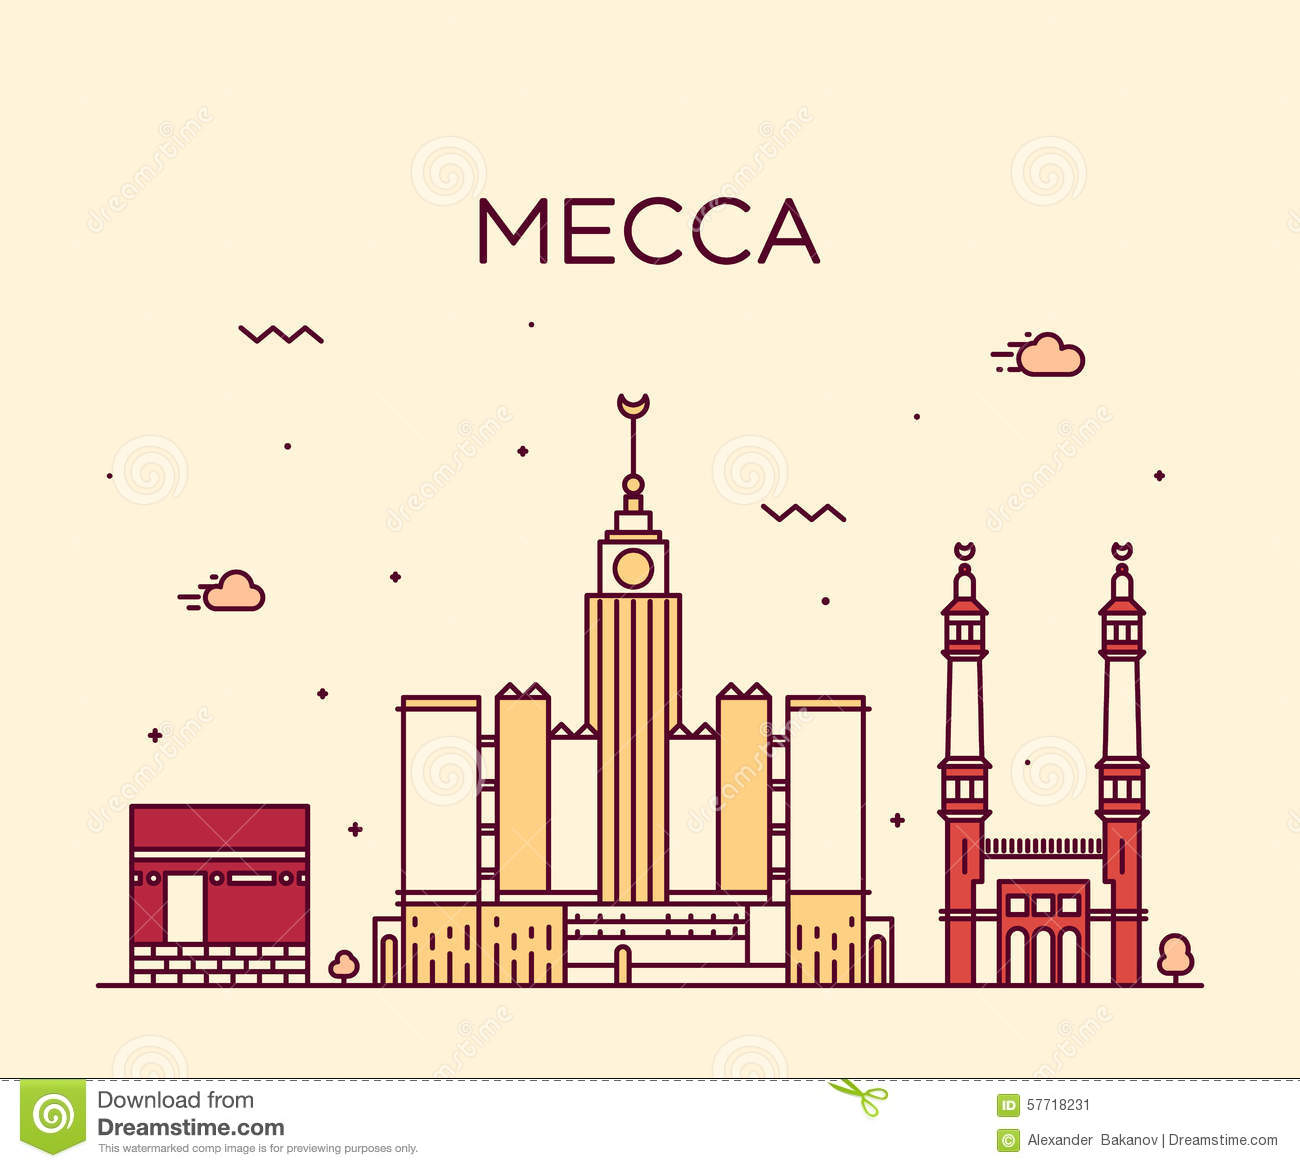 mecca single girls Women & girls why japan is paying single mothers to move to the countryside  artsy mecca for technology workers  have programs with financial incentives for single parents willing to .